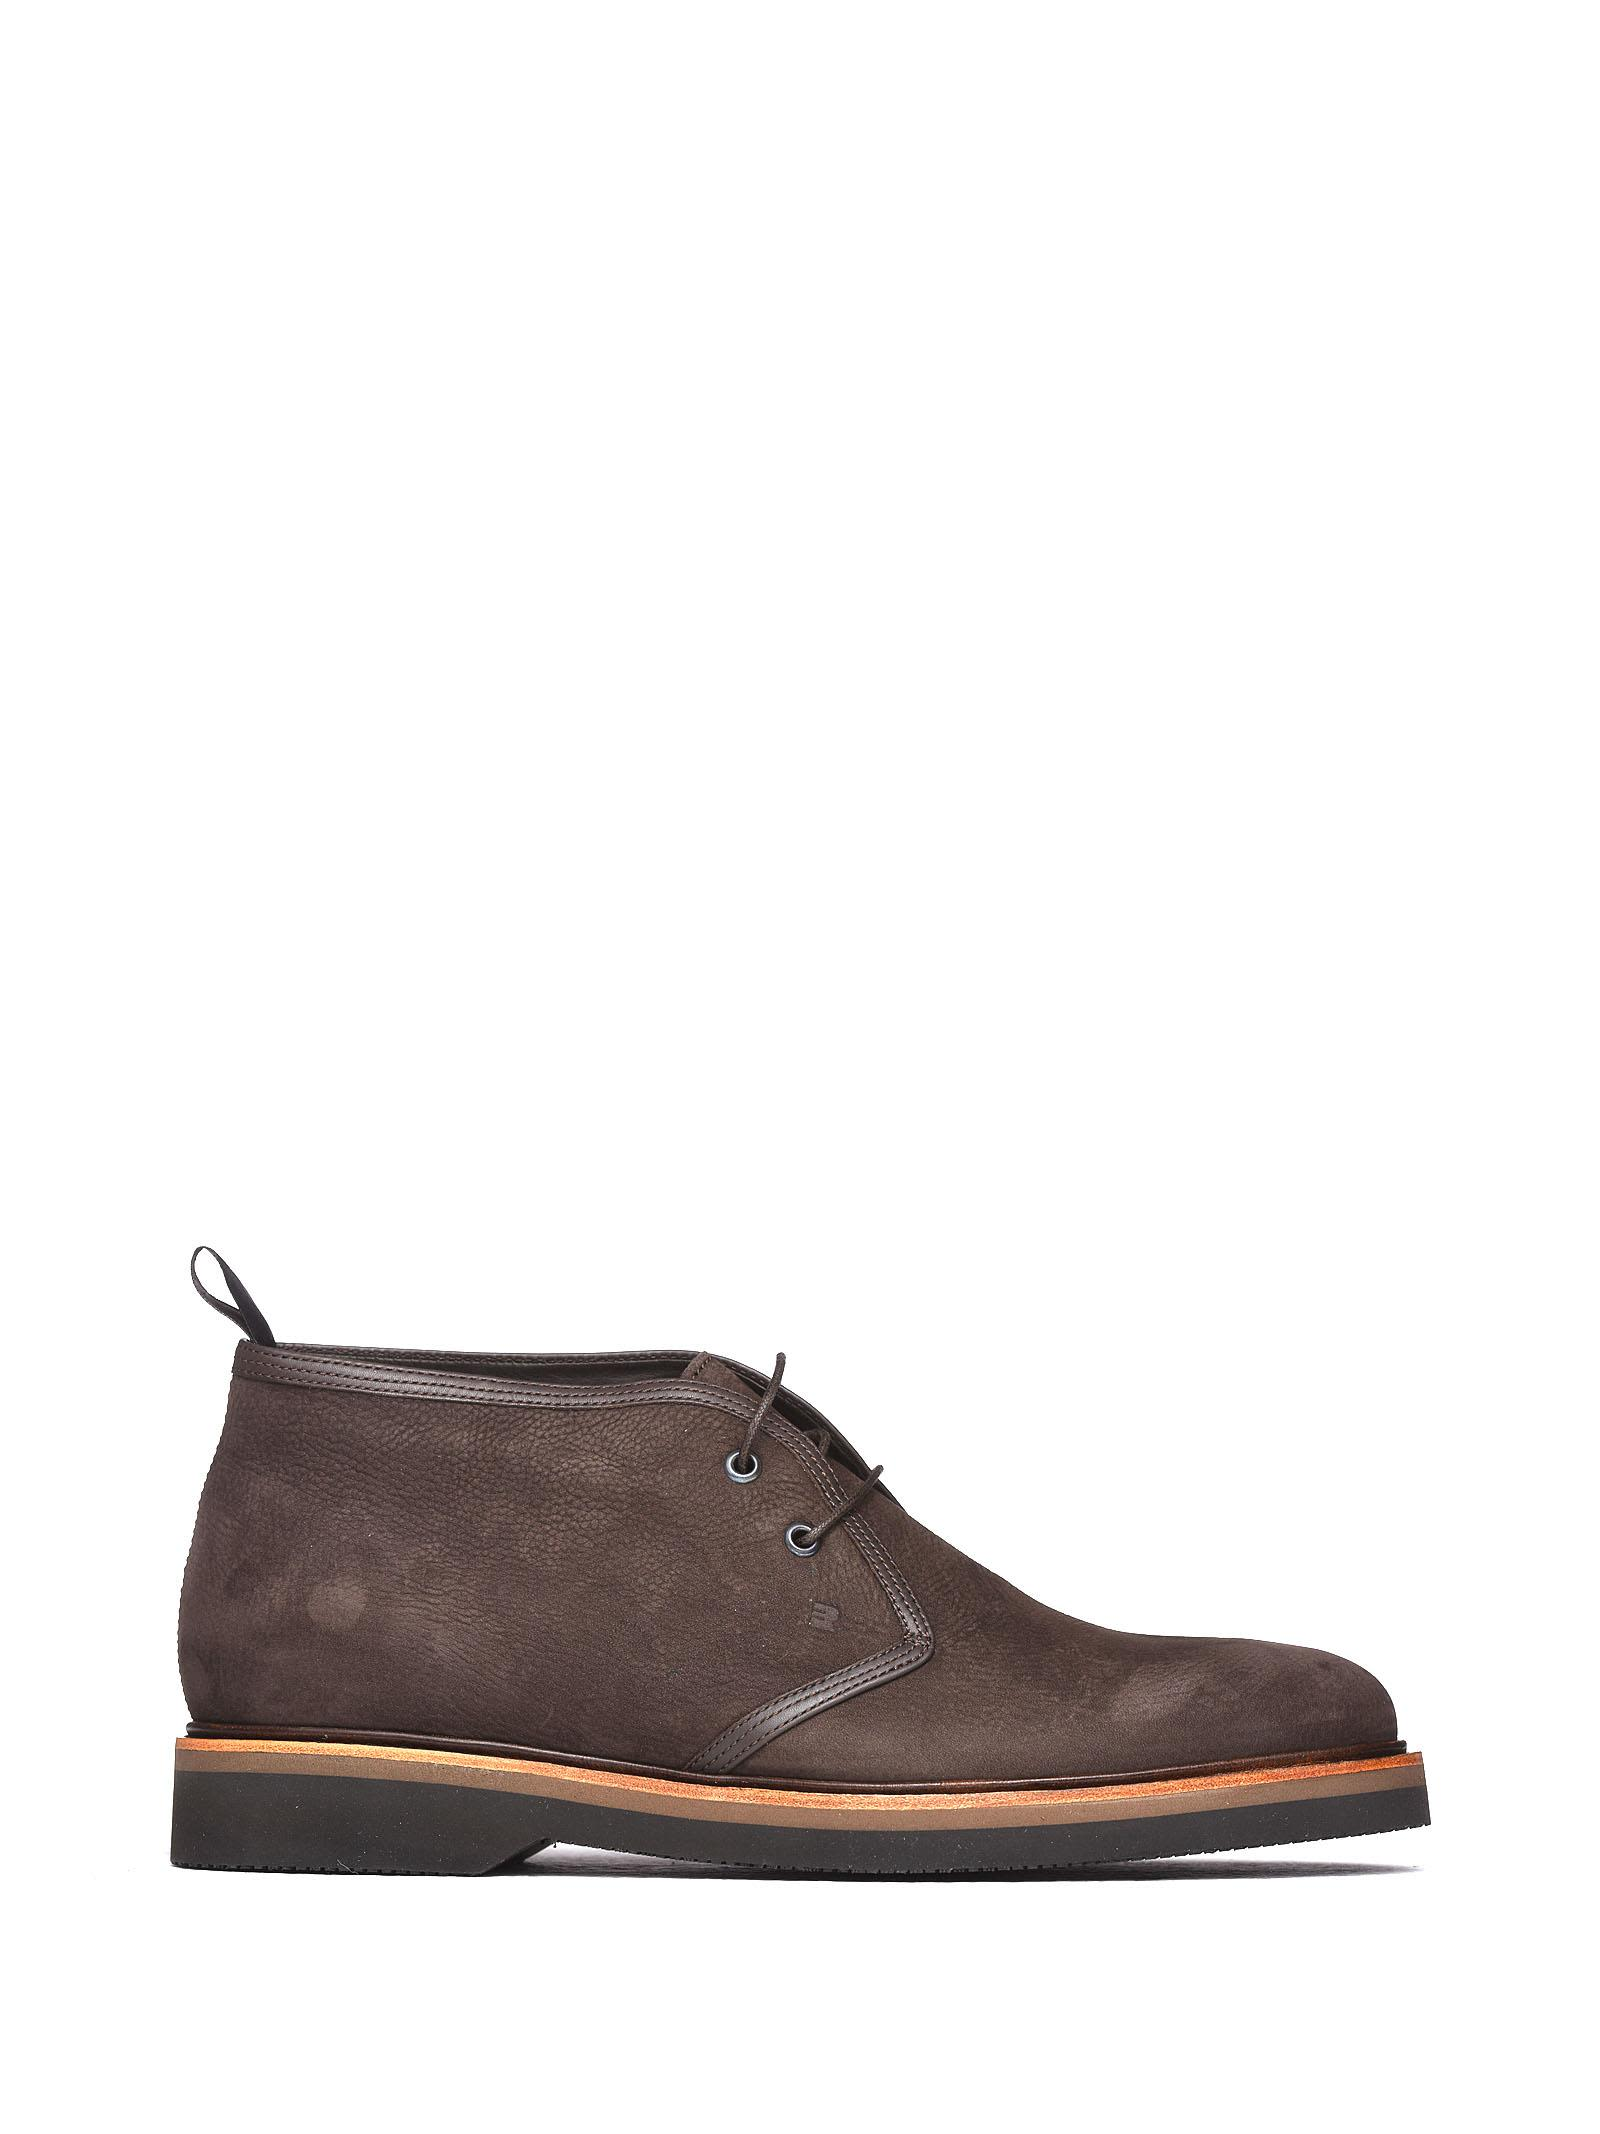 FRATELLI ROSSETTI ONE Desert Boot In Brown Nabuk in Ebano